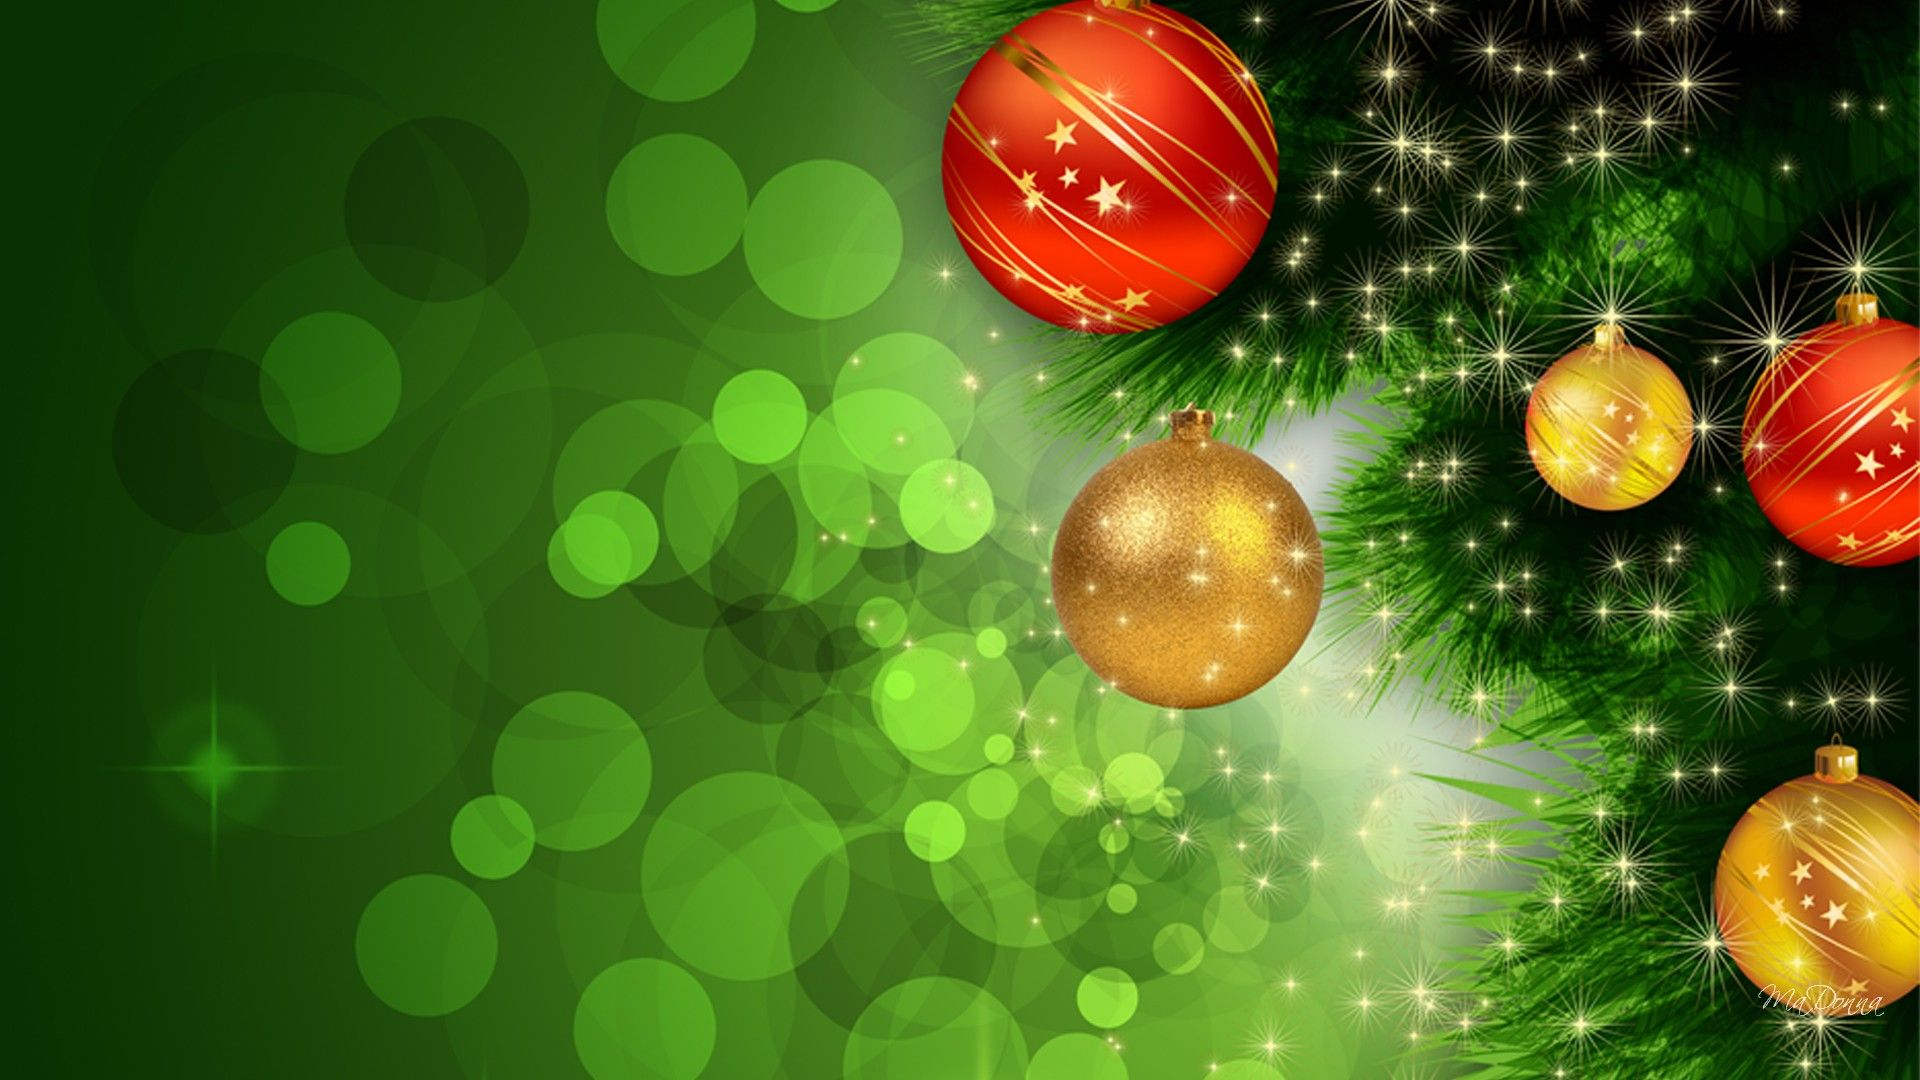 Green Christmas Nice Wallpaper